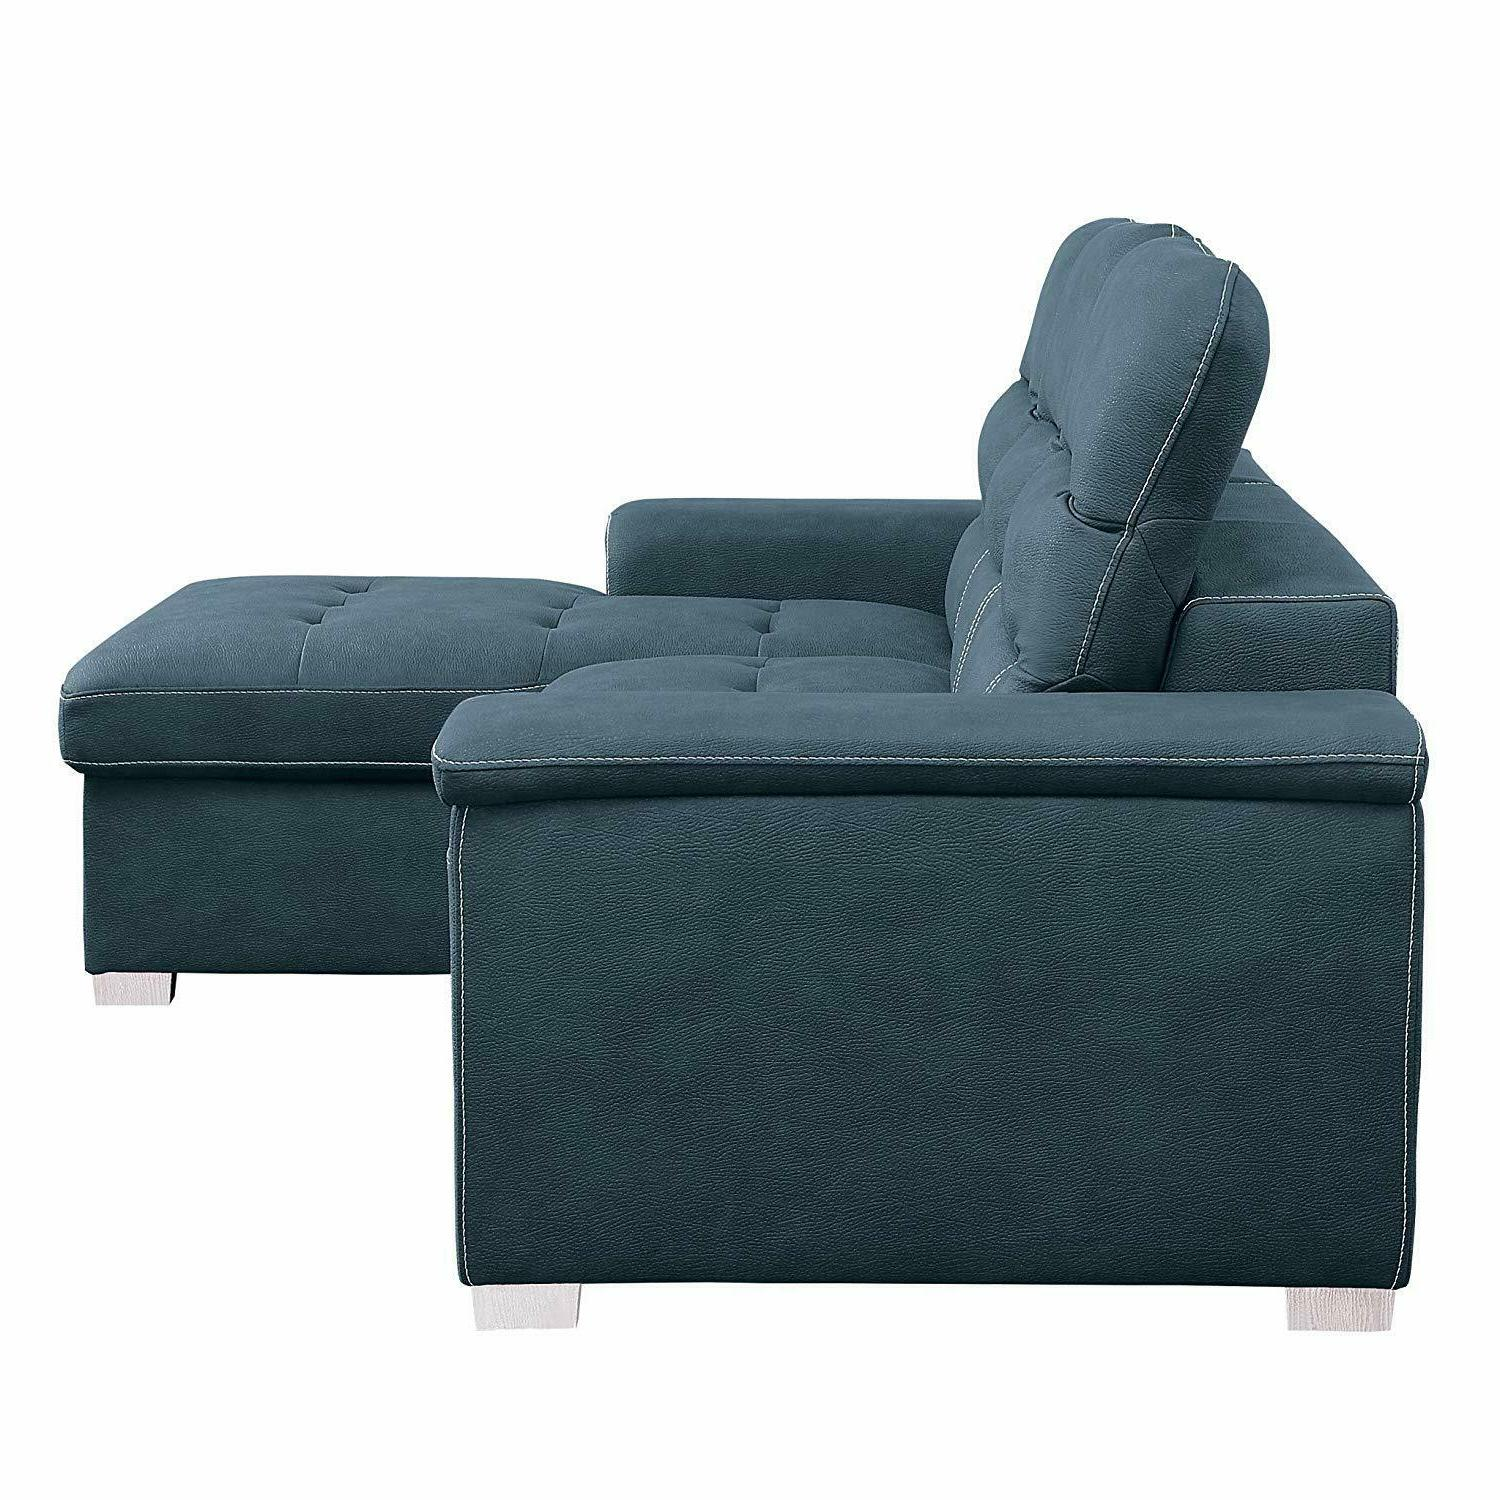 Homelegance Sectional Sofa with